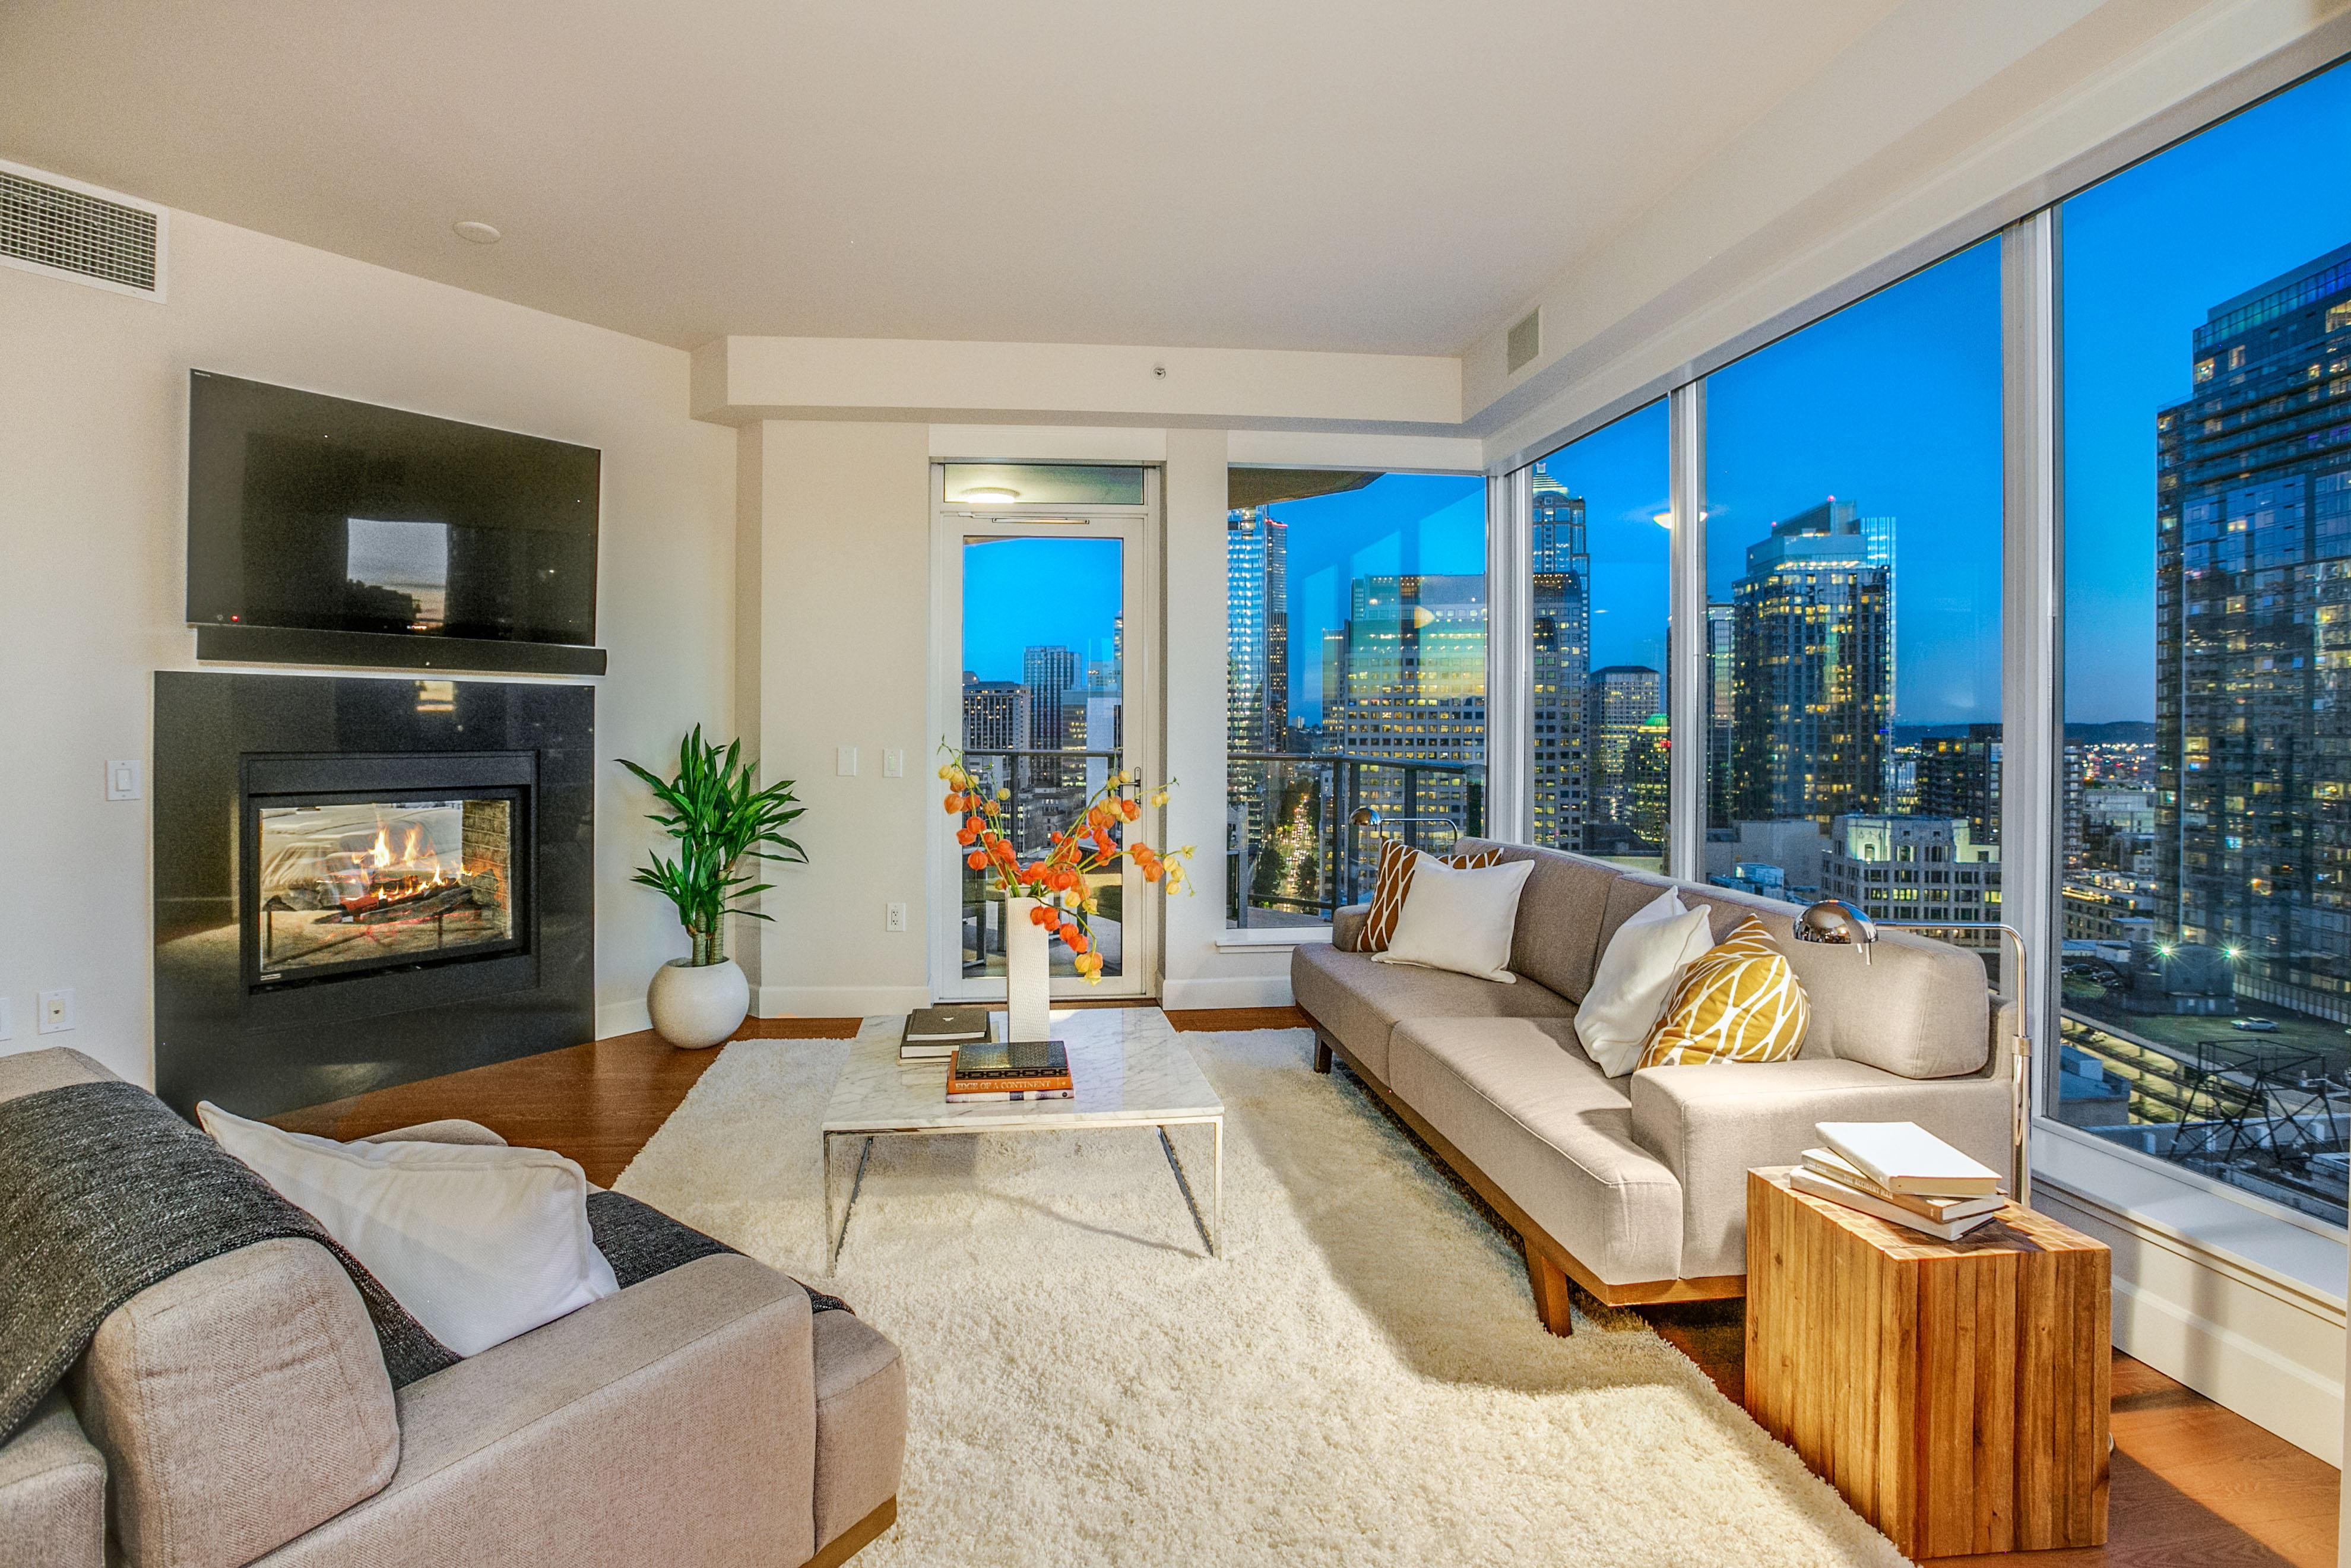 Breathtaking views, convenient amenities, and modern decor are cornerstones of living in a high-rise condo in Seattle.